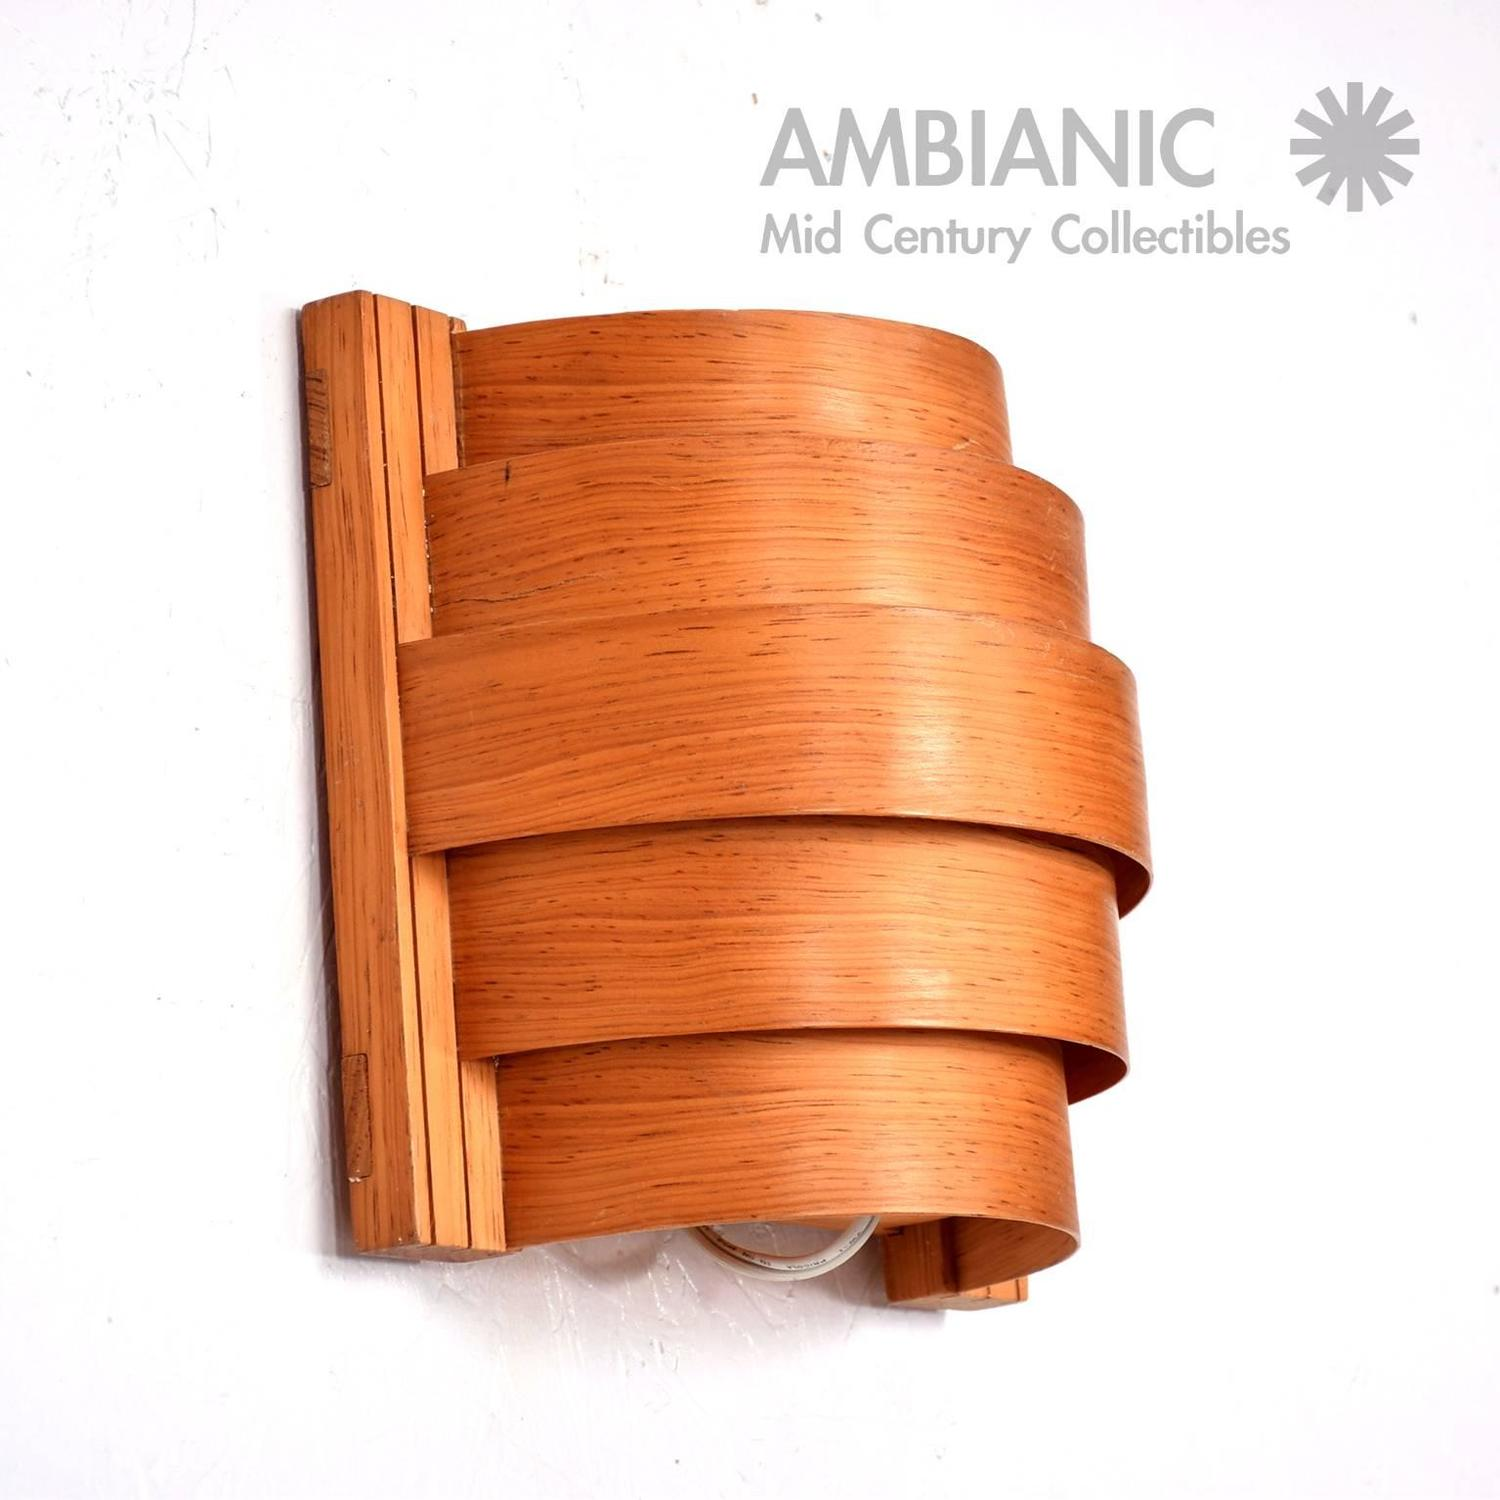 Mid-Century Modern Teak Wall Sconce, Scandinavian Mid-Century Modern For Sale at 1stdibs